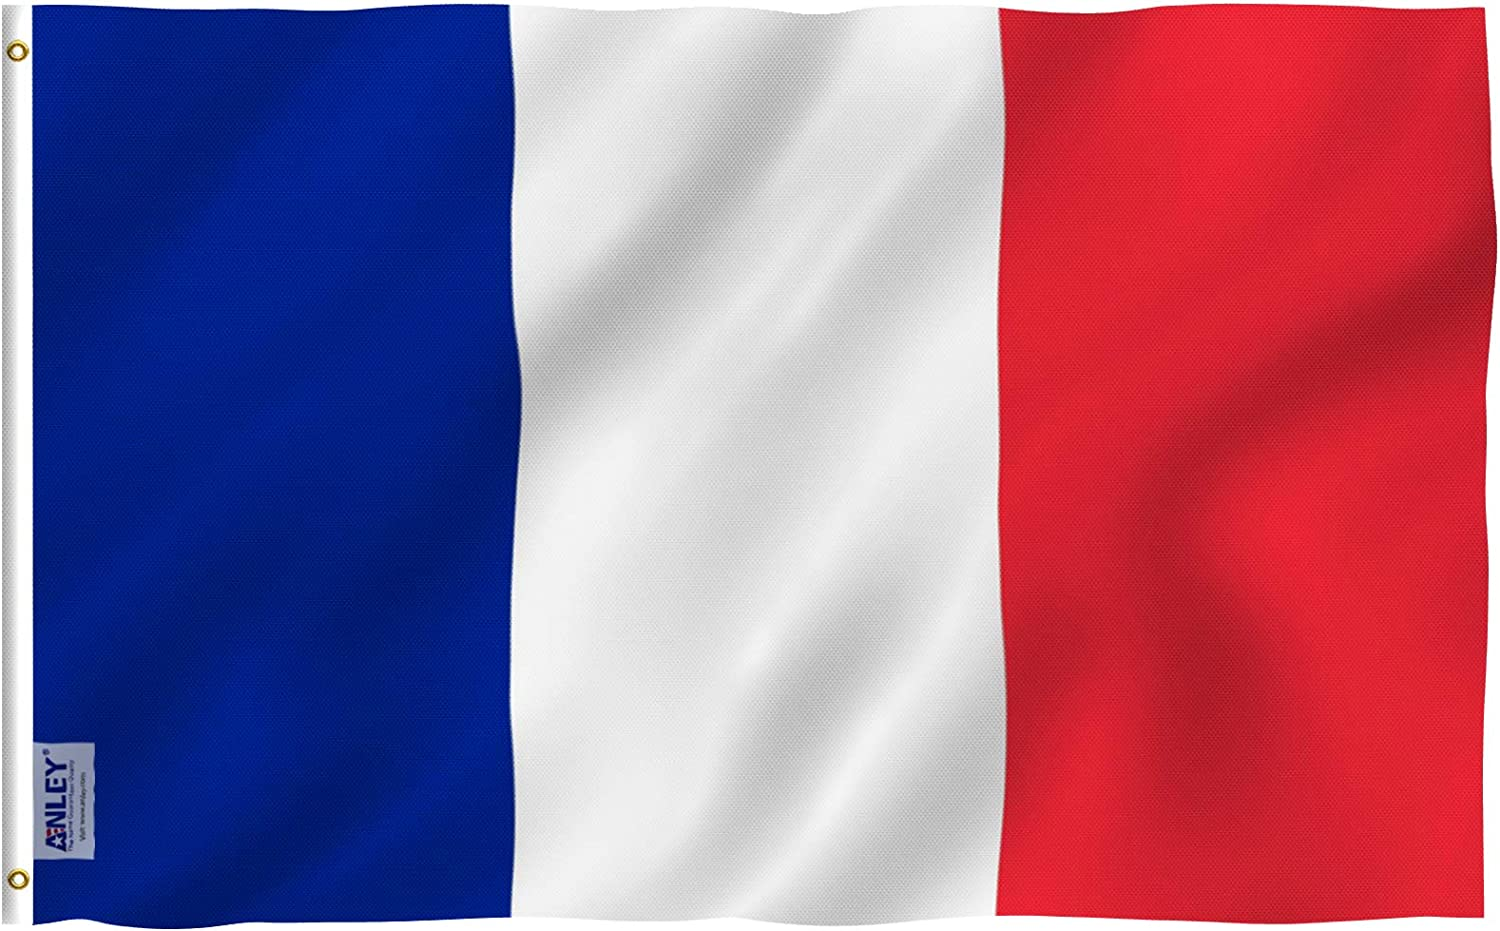 Anley Fly Breeze 3x5 Foot France Flag - Vivid Color and Fade Proof - Canvas Header and Double Stitched - French National Flags Polyester with Brass Grommets 3 X 5 Ft